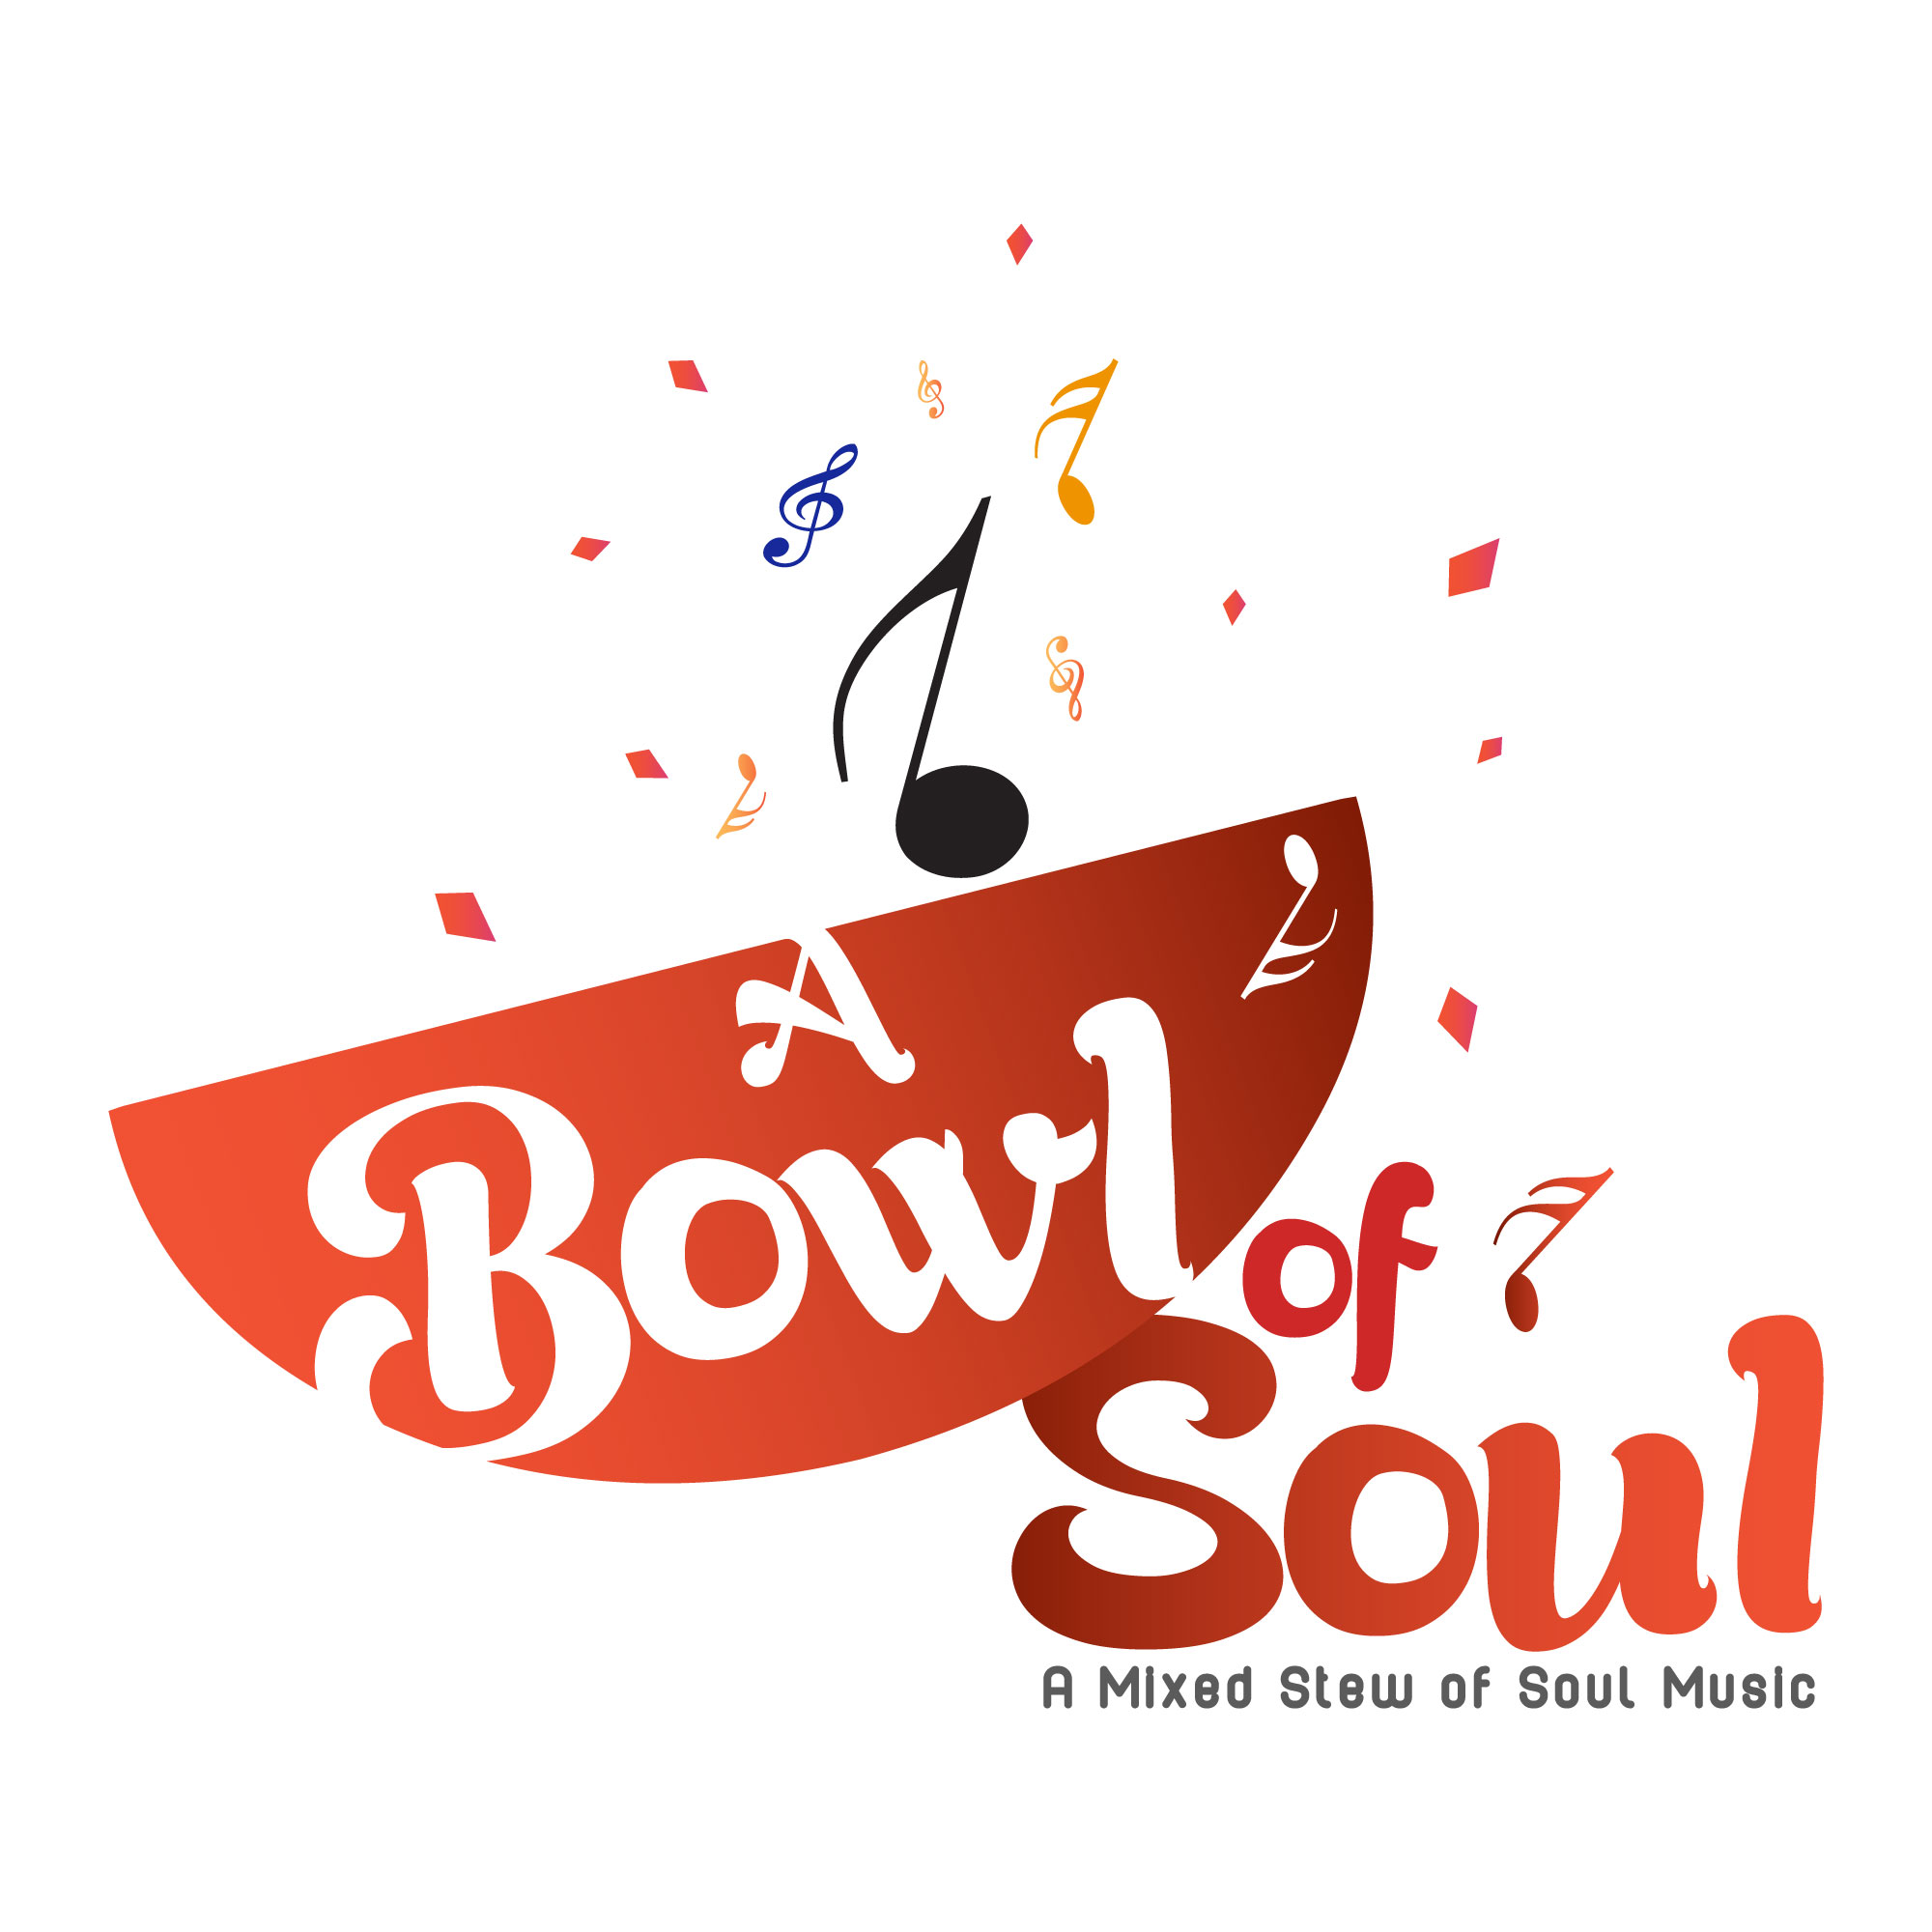 A Bowl of Soul A Mixed Stew of Soul Music Broadcast - 02-19-2021 - A Bowl of Soul Celebrates New R&B Music for 2021. Rest in Peace Johnny Pacheco, Co-Founder of Fania Records and Salsa - Chick Corea - Co-Creator of Jazz Fusion show art